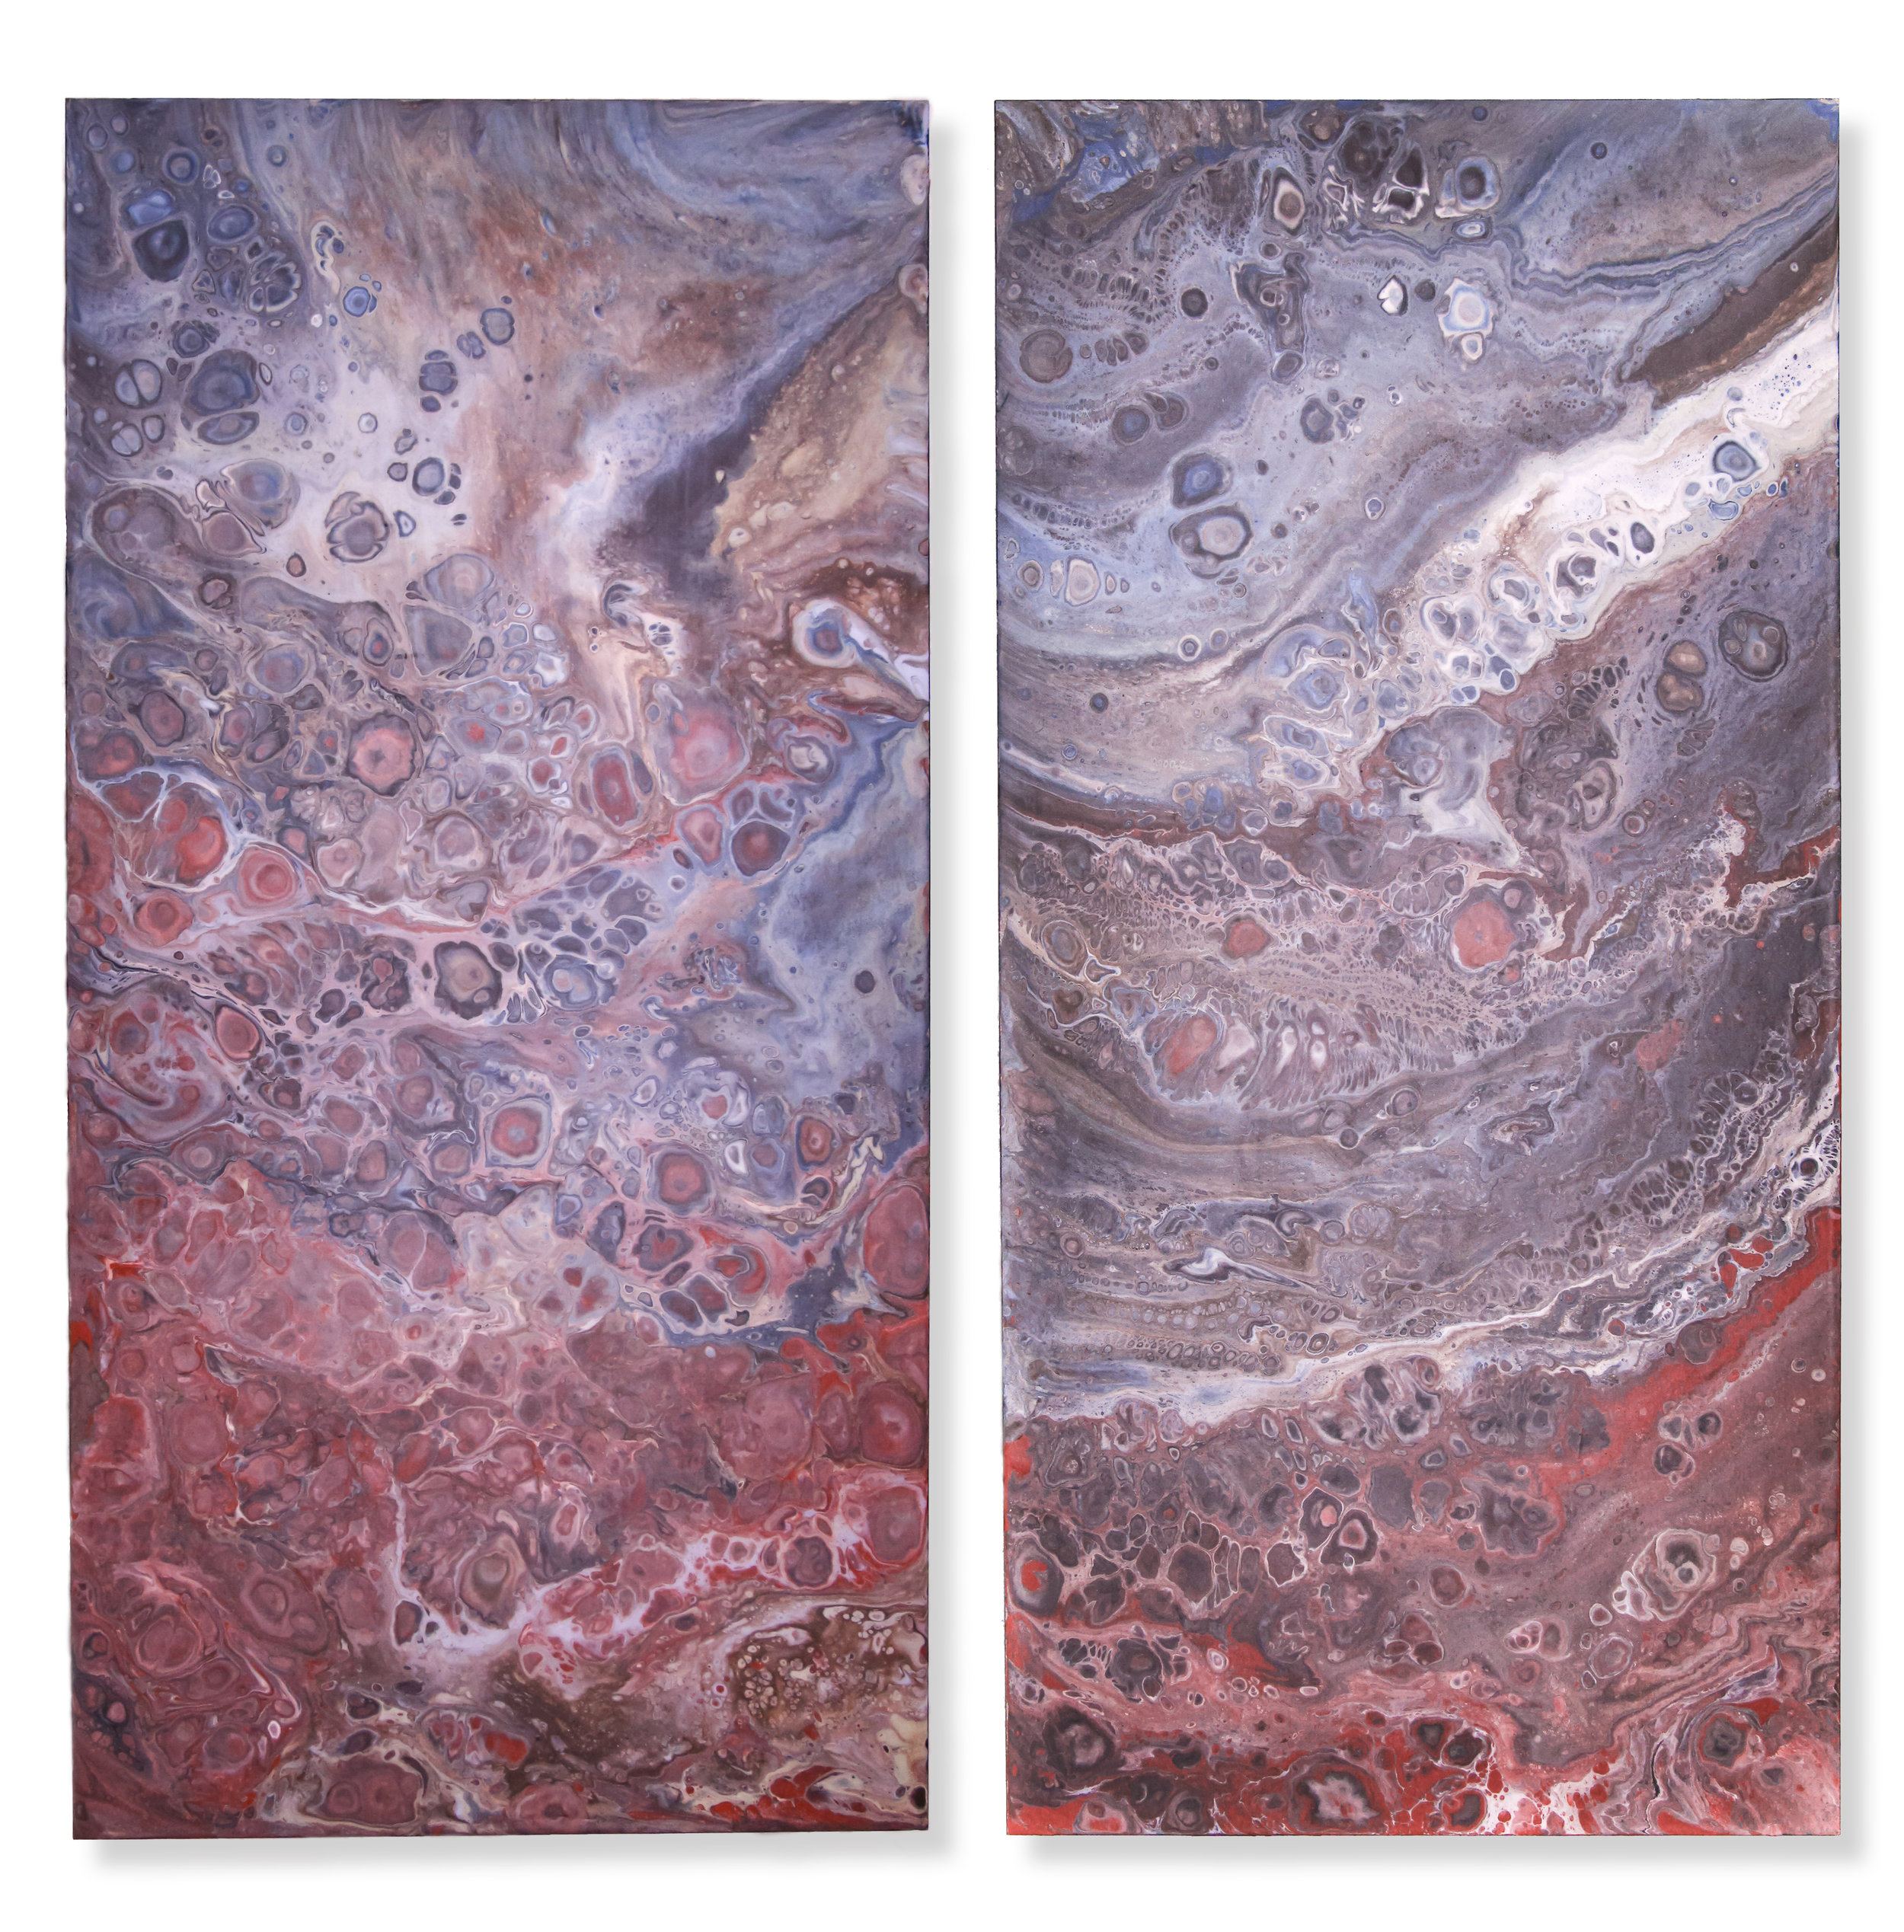 "Dan Mohr,  Cobalt, Red Oxide.  2019. Acrylic on Porcelain. Diptych, each panel 18"" x 36""."